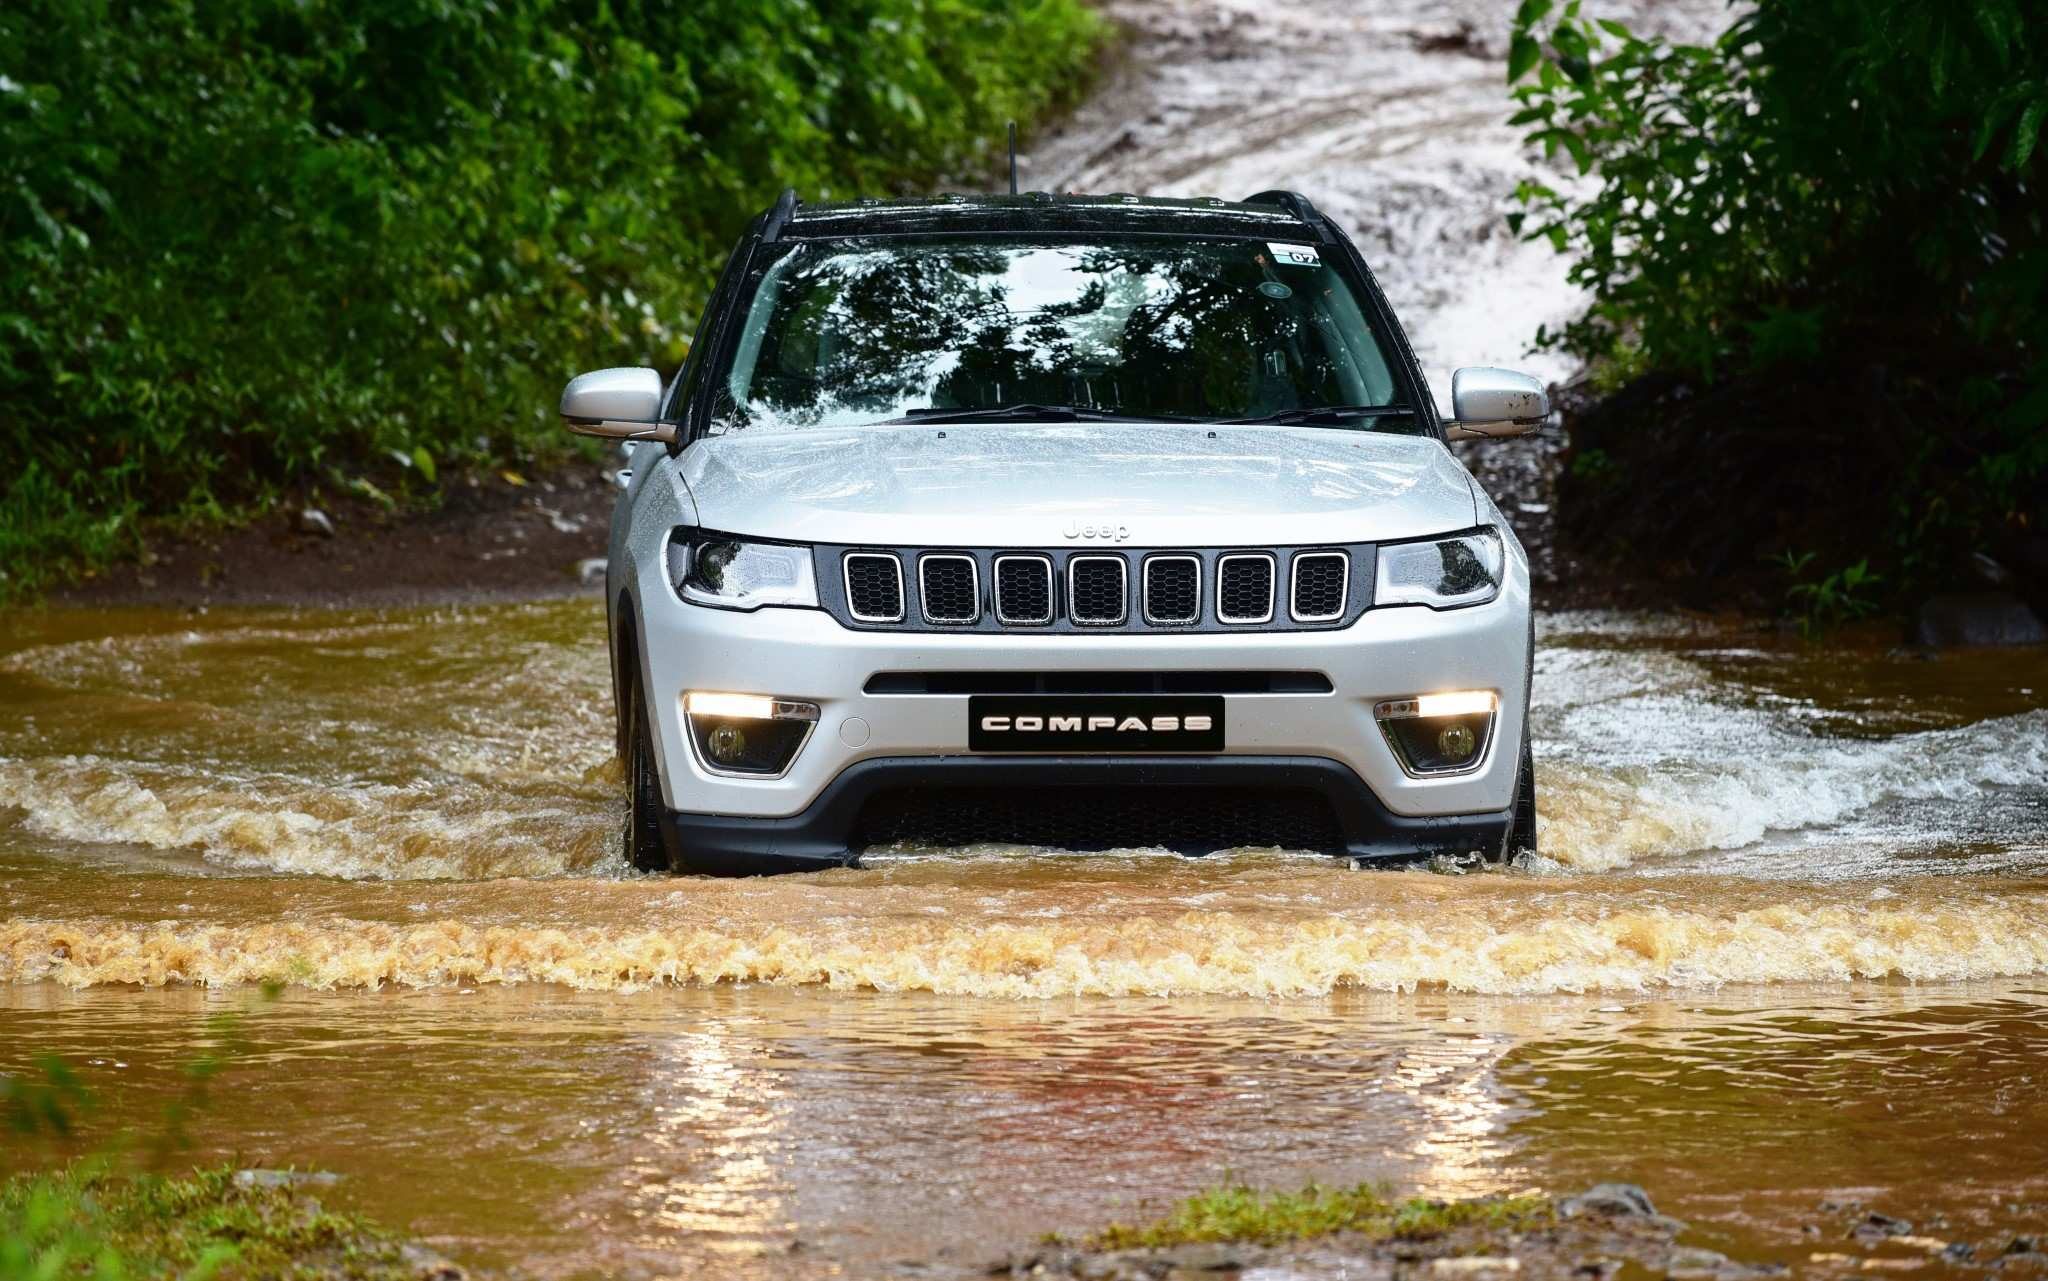 41 Great Jeep Compass 2020 India Pictures by Jeep Compass 2020 India